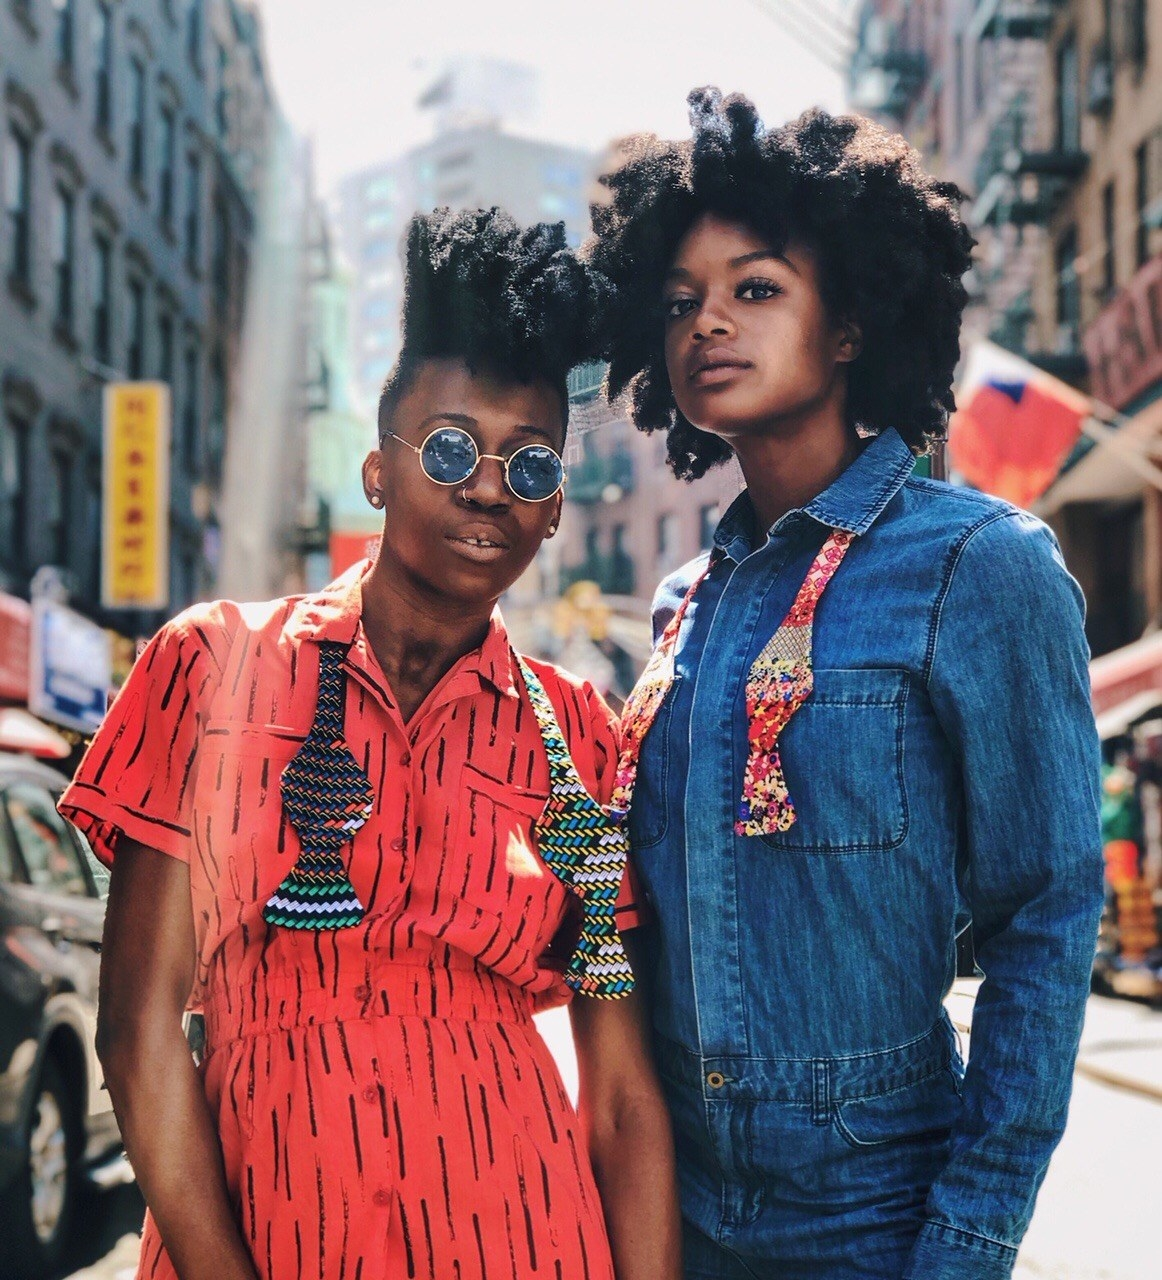 Two models wearing colorful, printed neck straps